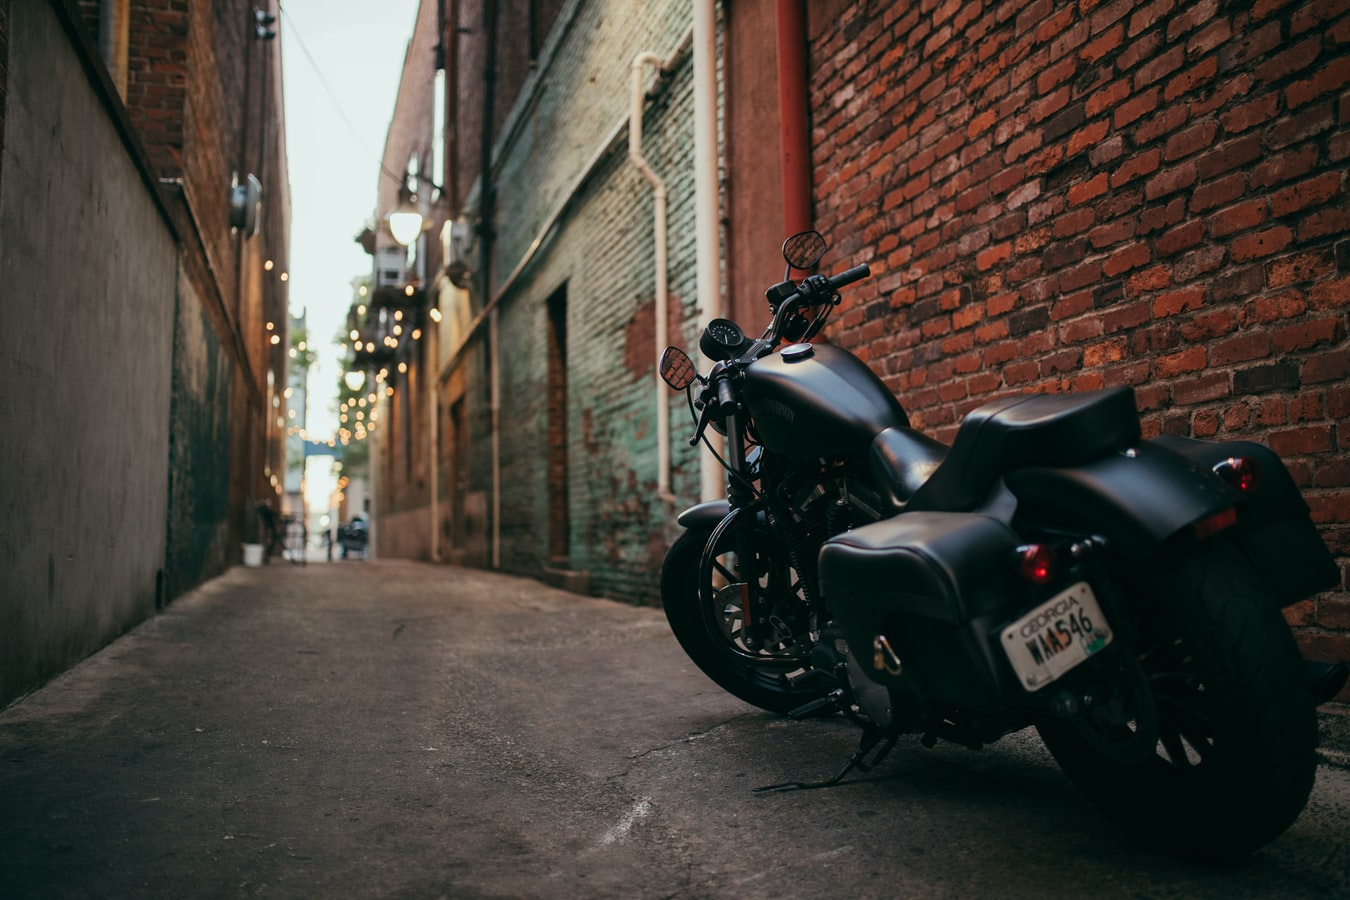 A Motorbike Parked by A Brick Wall In An Alley